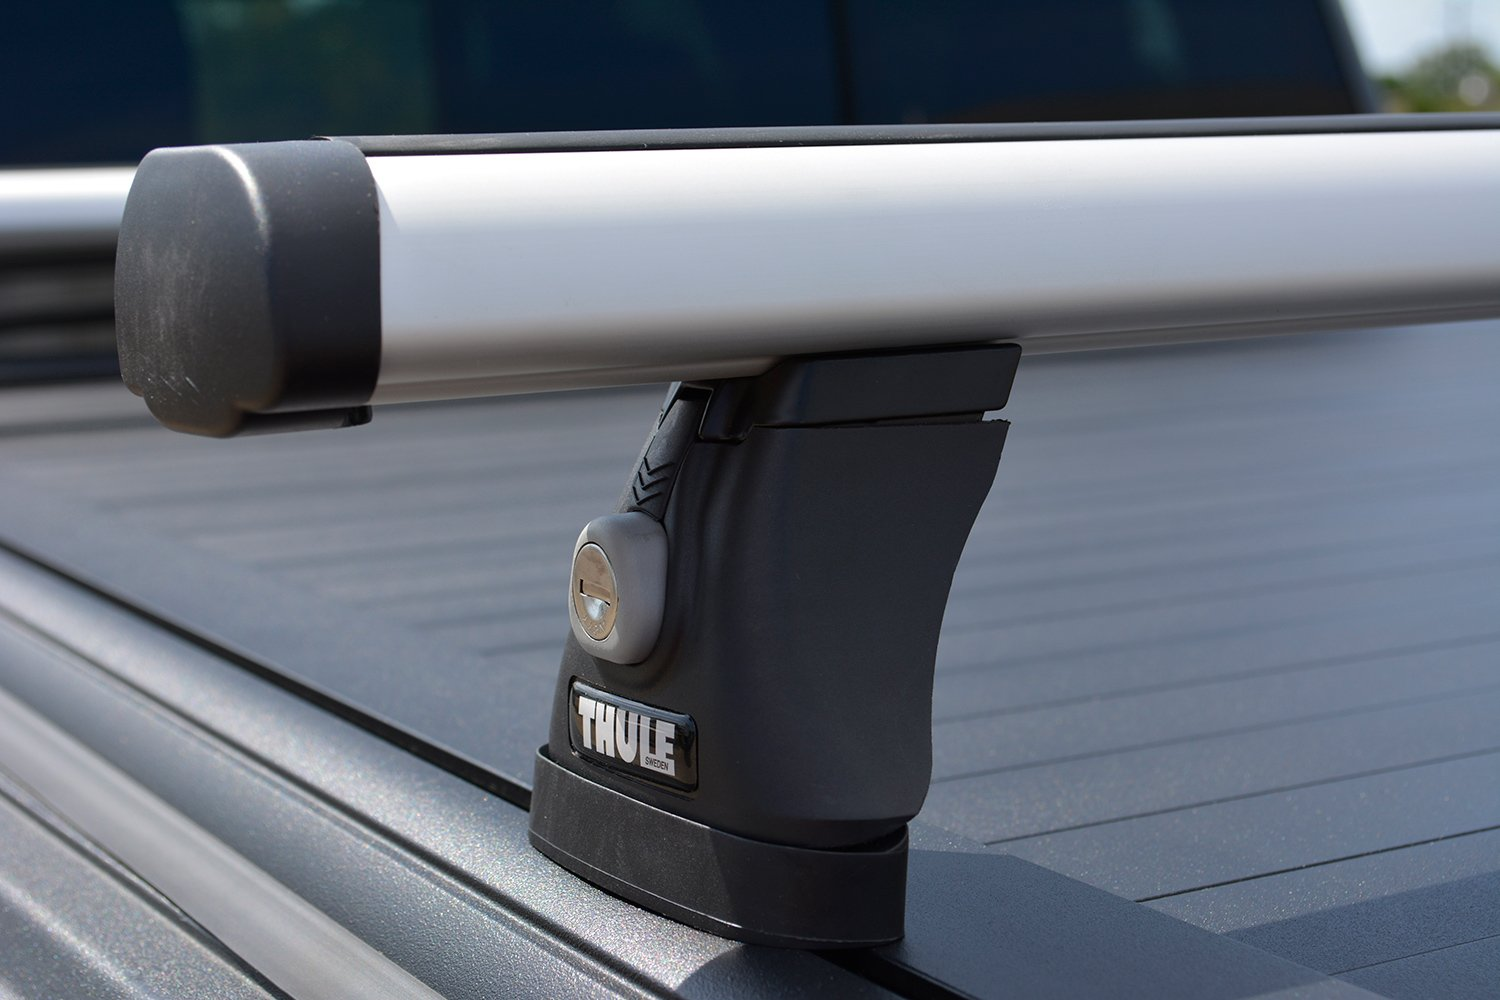 Pace Edwards Multi Sport Rack System By Thule For